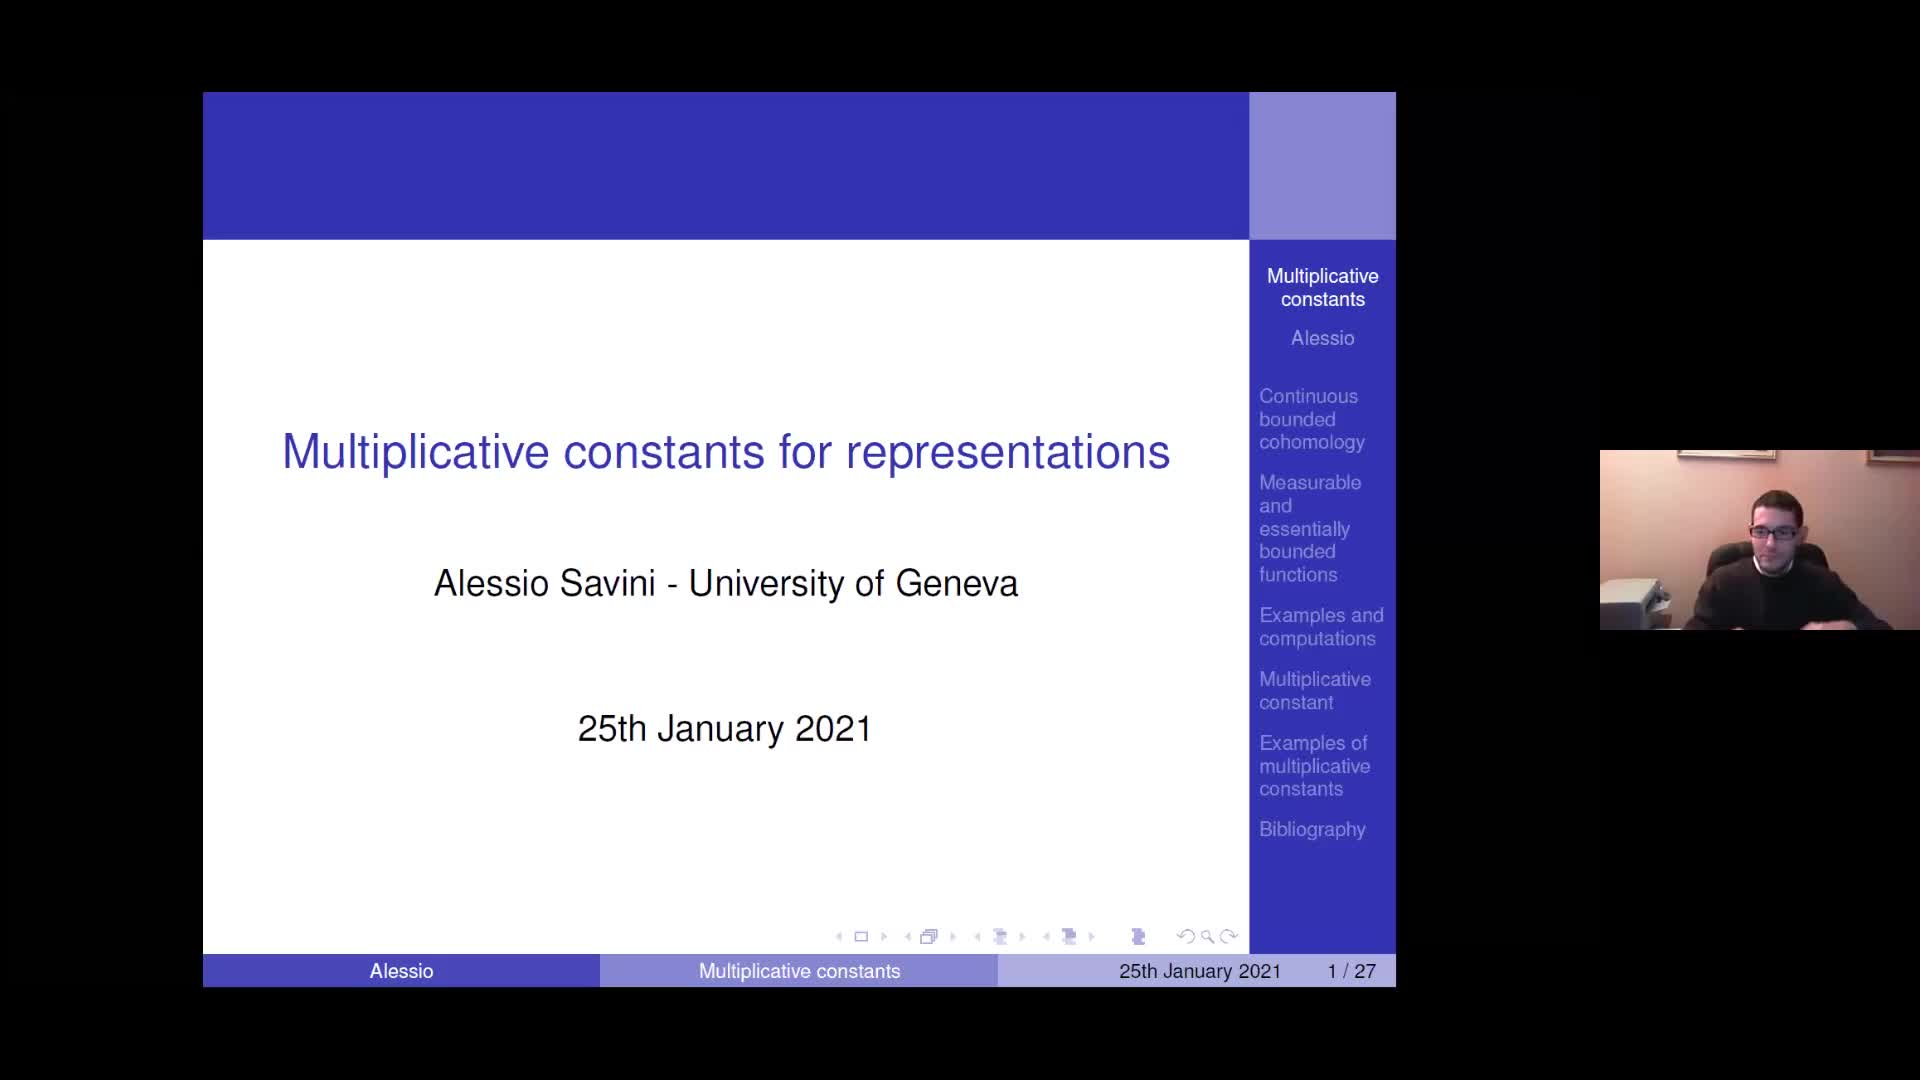 Multiplicative constants for representations